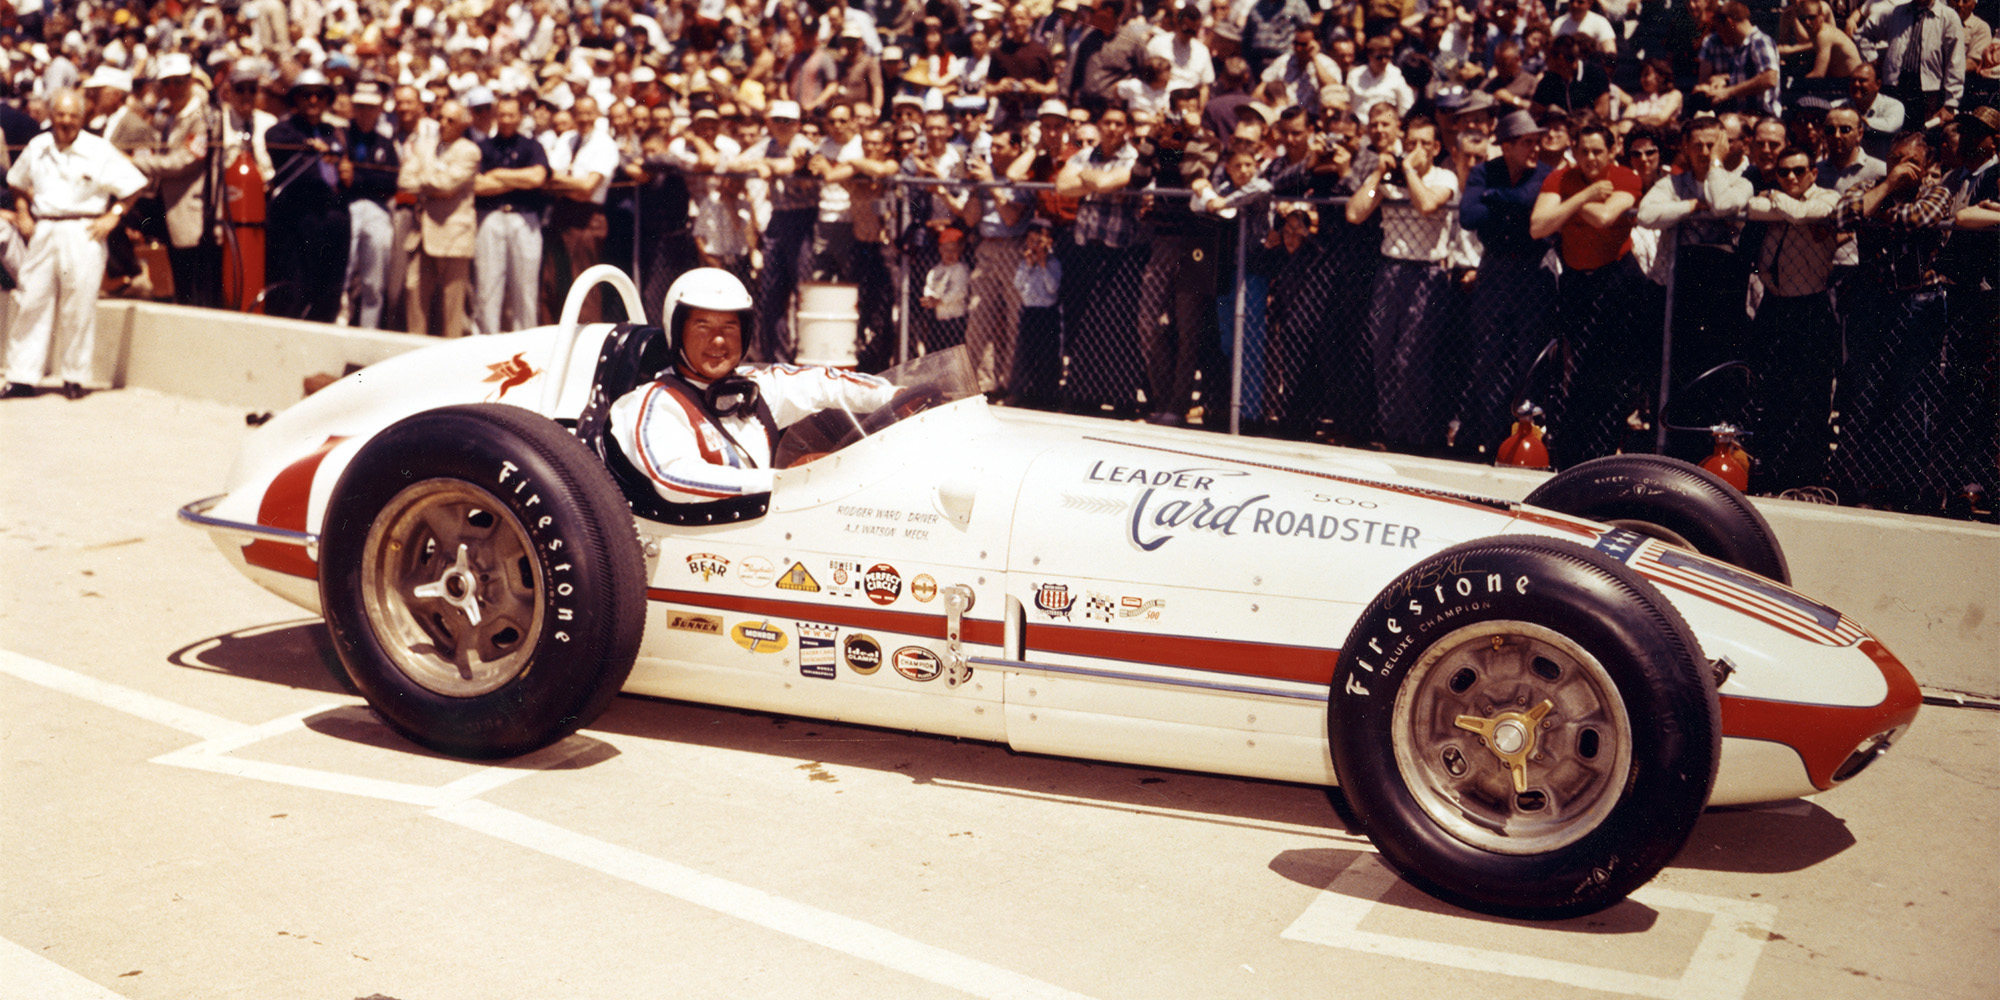 Rodger Ward in his car portrait shot at the 1960 Indy 500